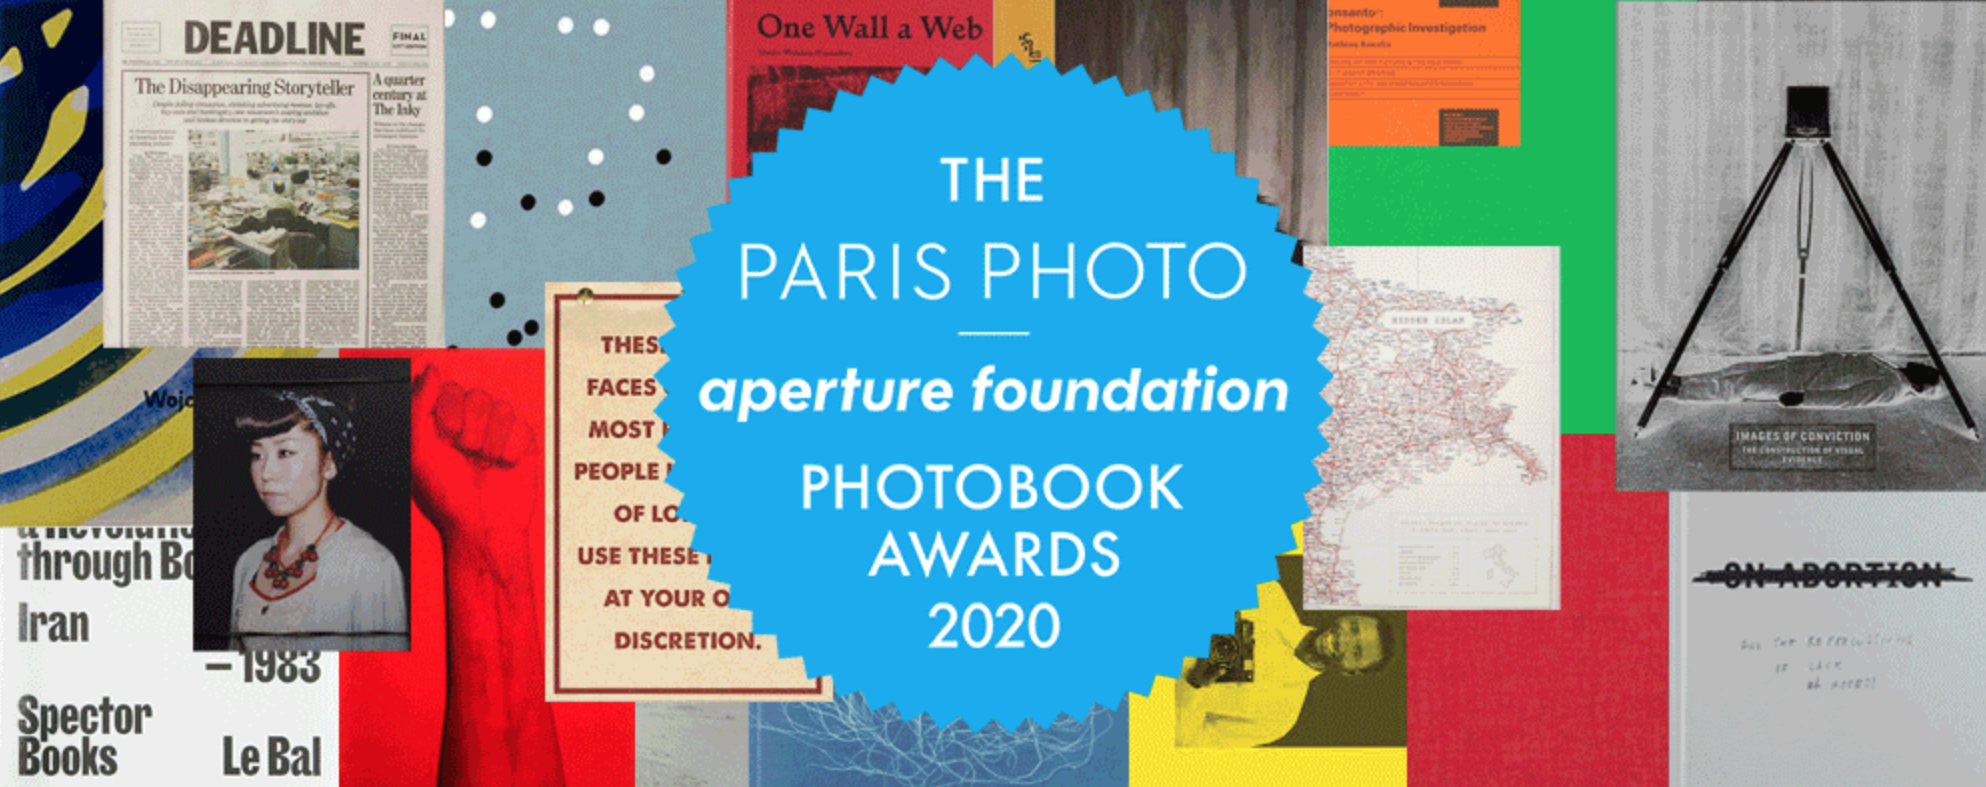 Paris PhotoBook Awards Aperture Foundation